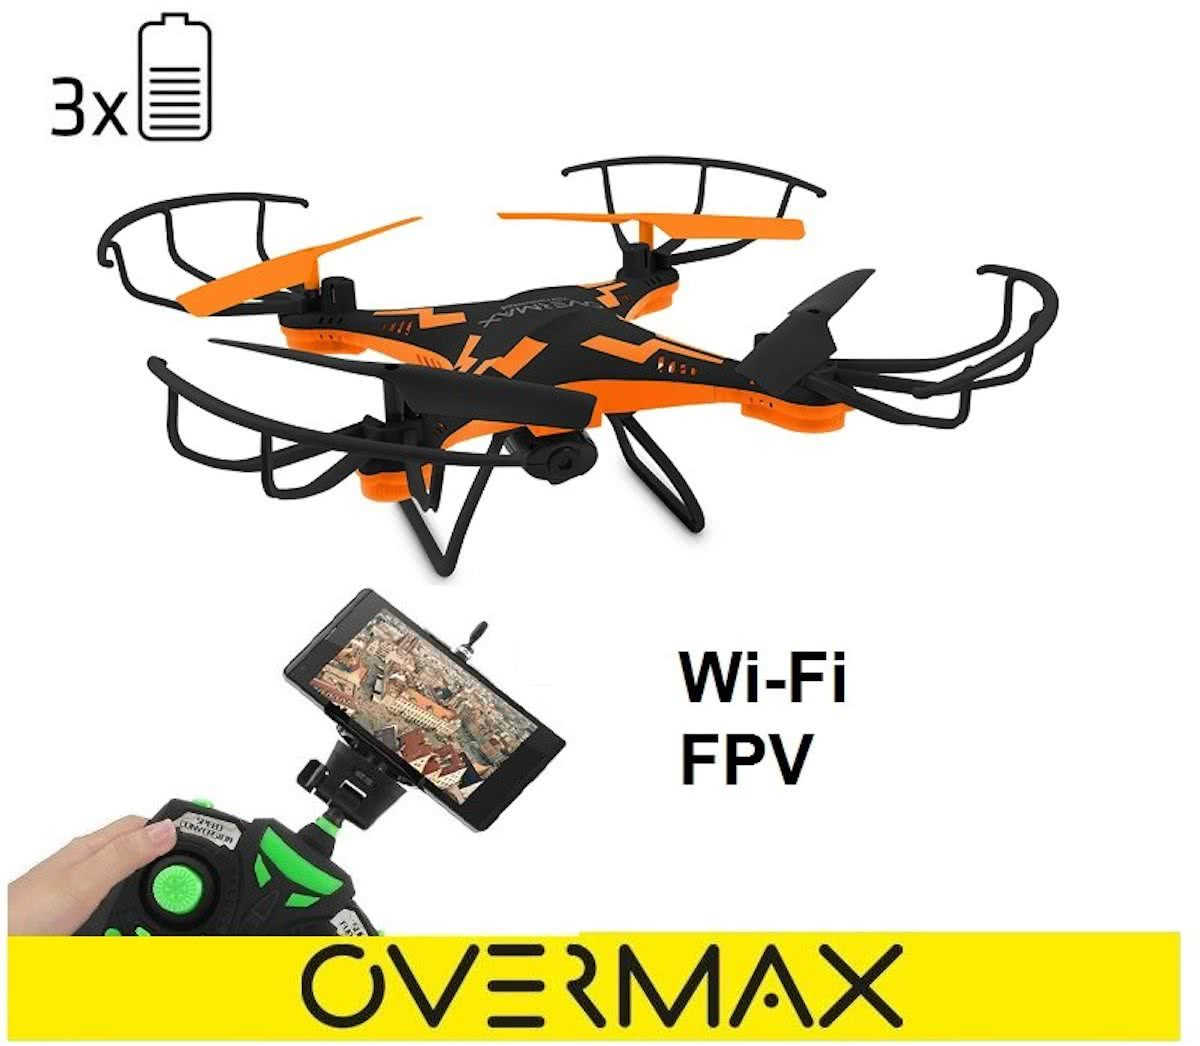 Overmax X-Bee Drone 3.1 zwart/oranje WiFi, Quadrocopter met 2MP camera. 6 axis, 3 accus 750mAh